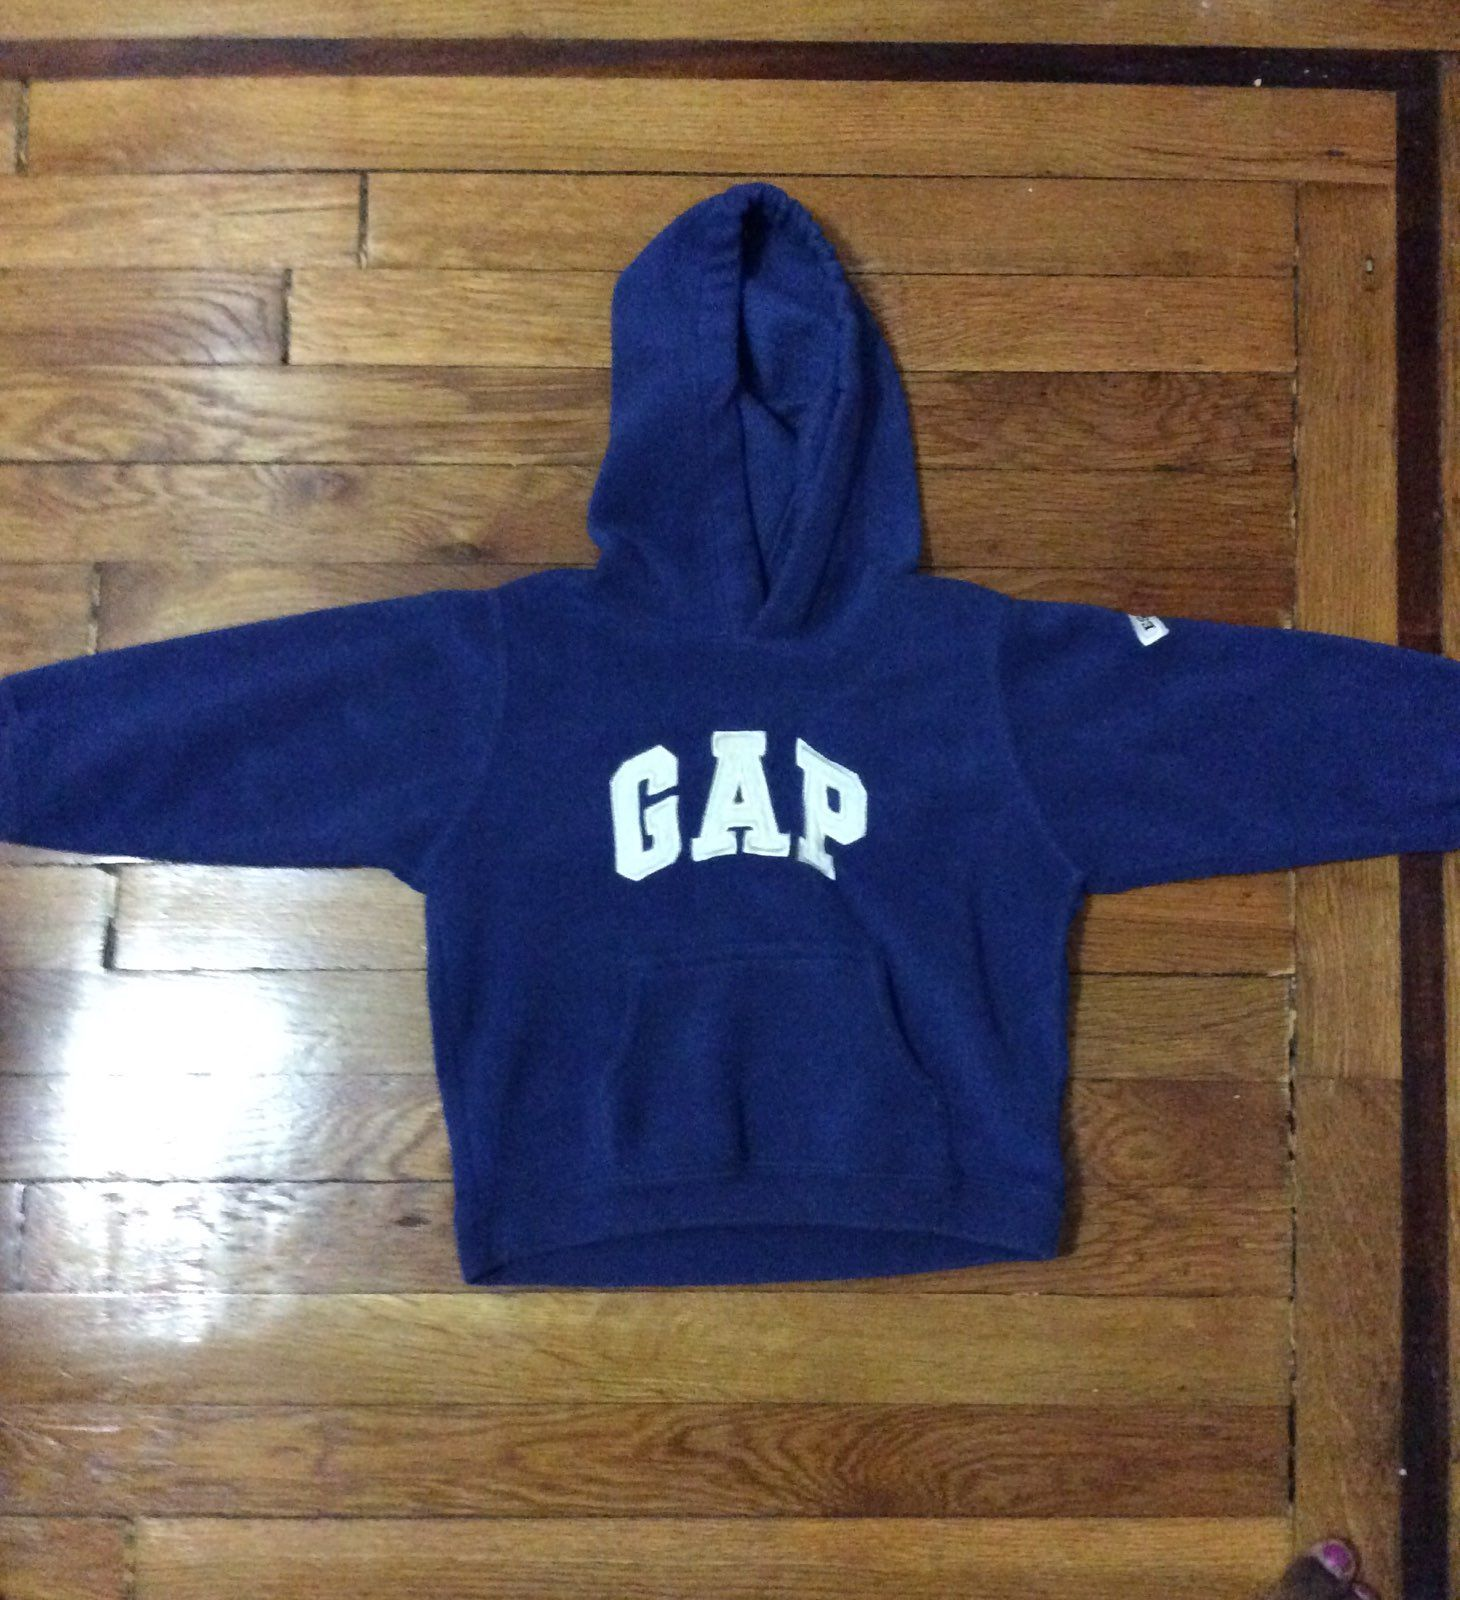 Gap Royal Blue Pullover Sweater - Mercari: BUY & SELL THINGS YOU LOVE